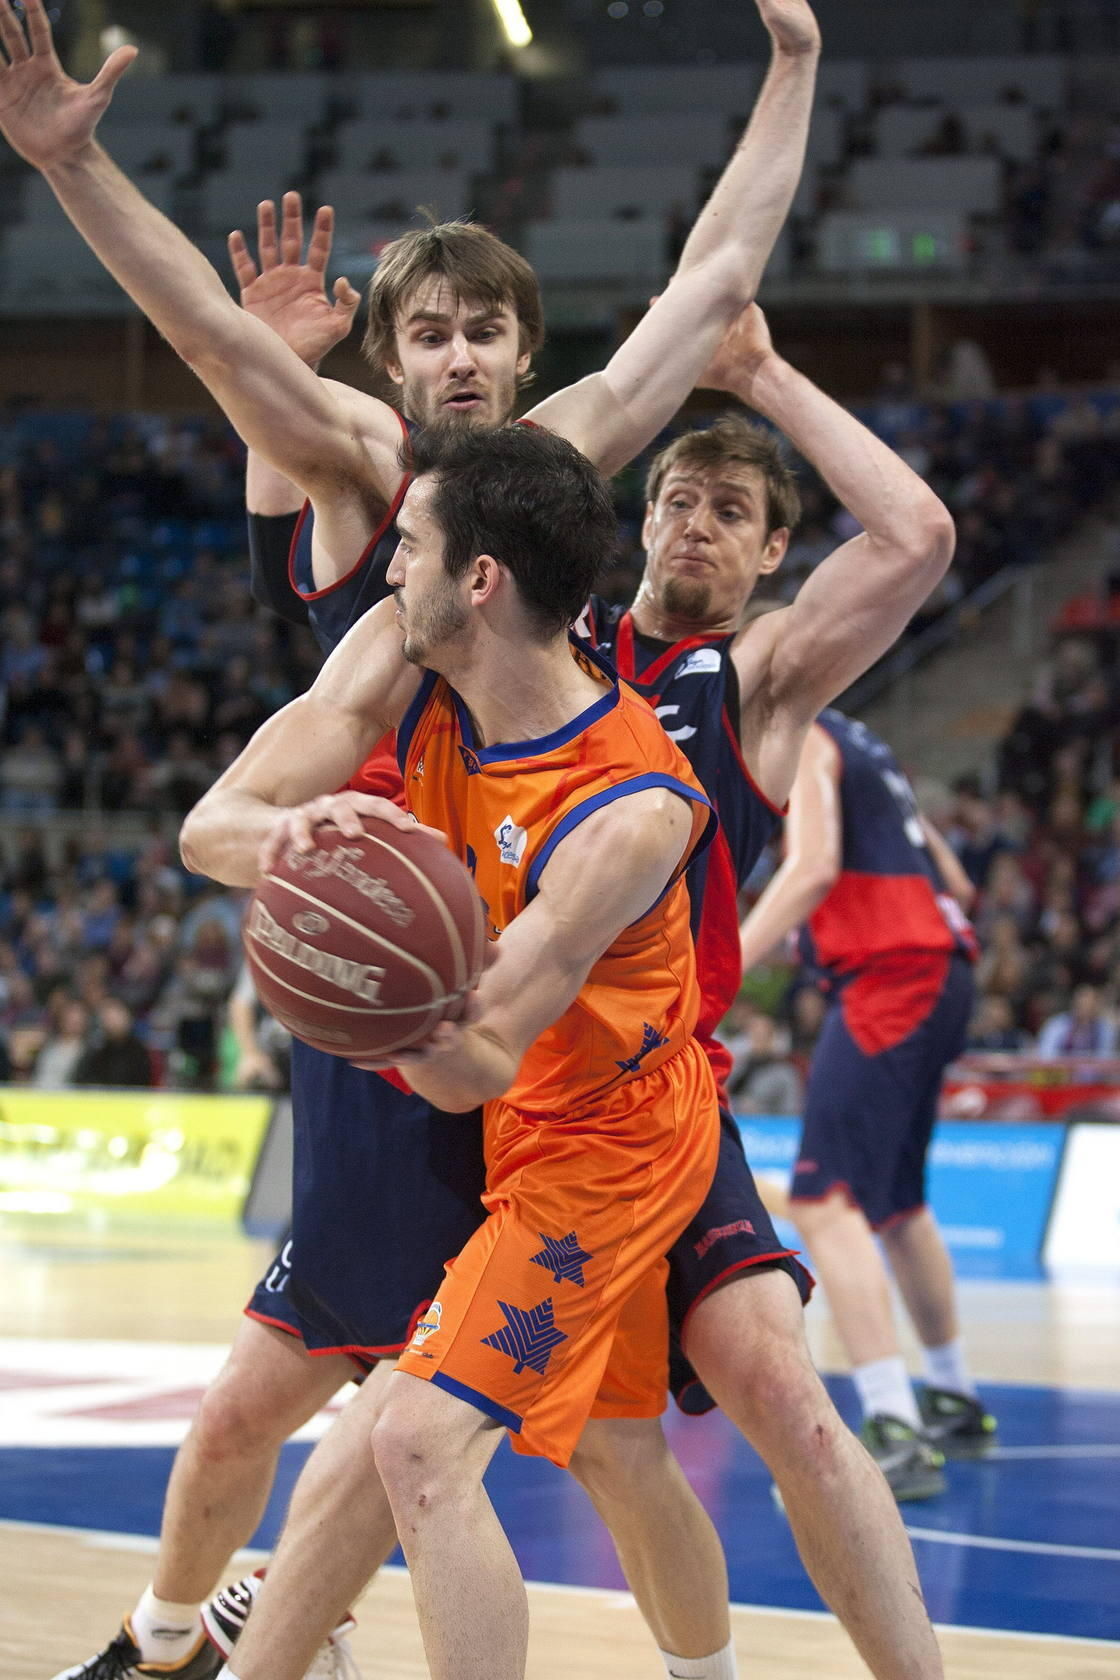 Partido entre el Caja Laboral - Valencia Basket